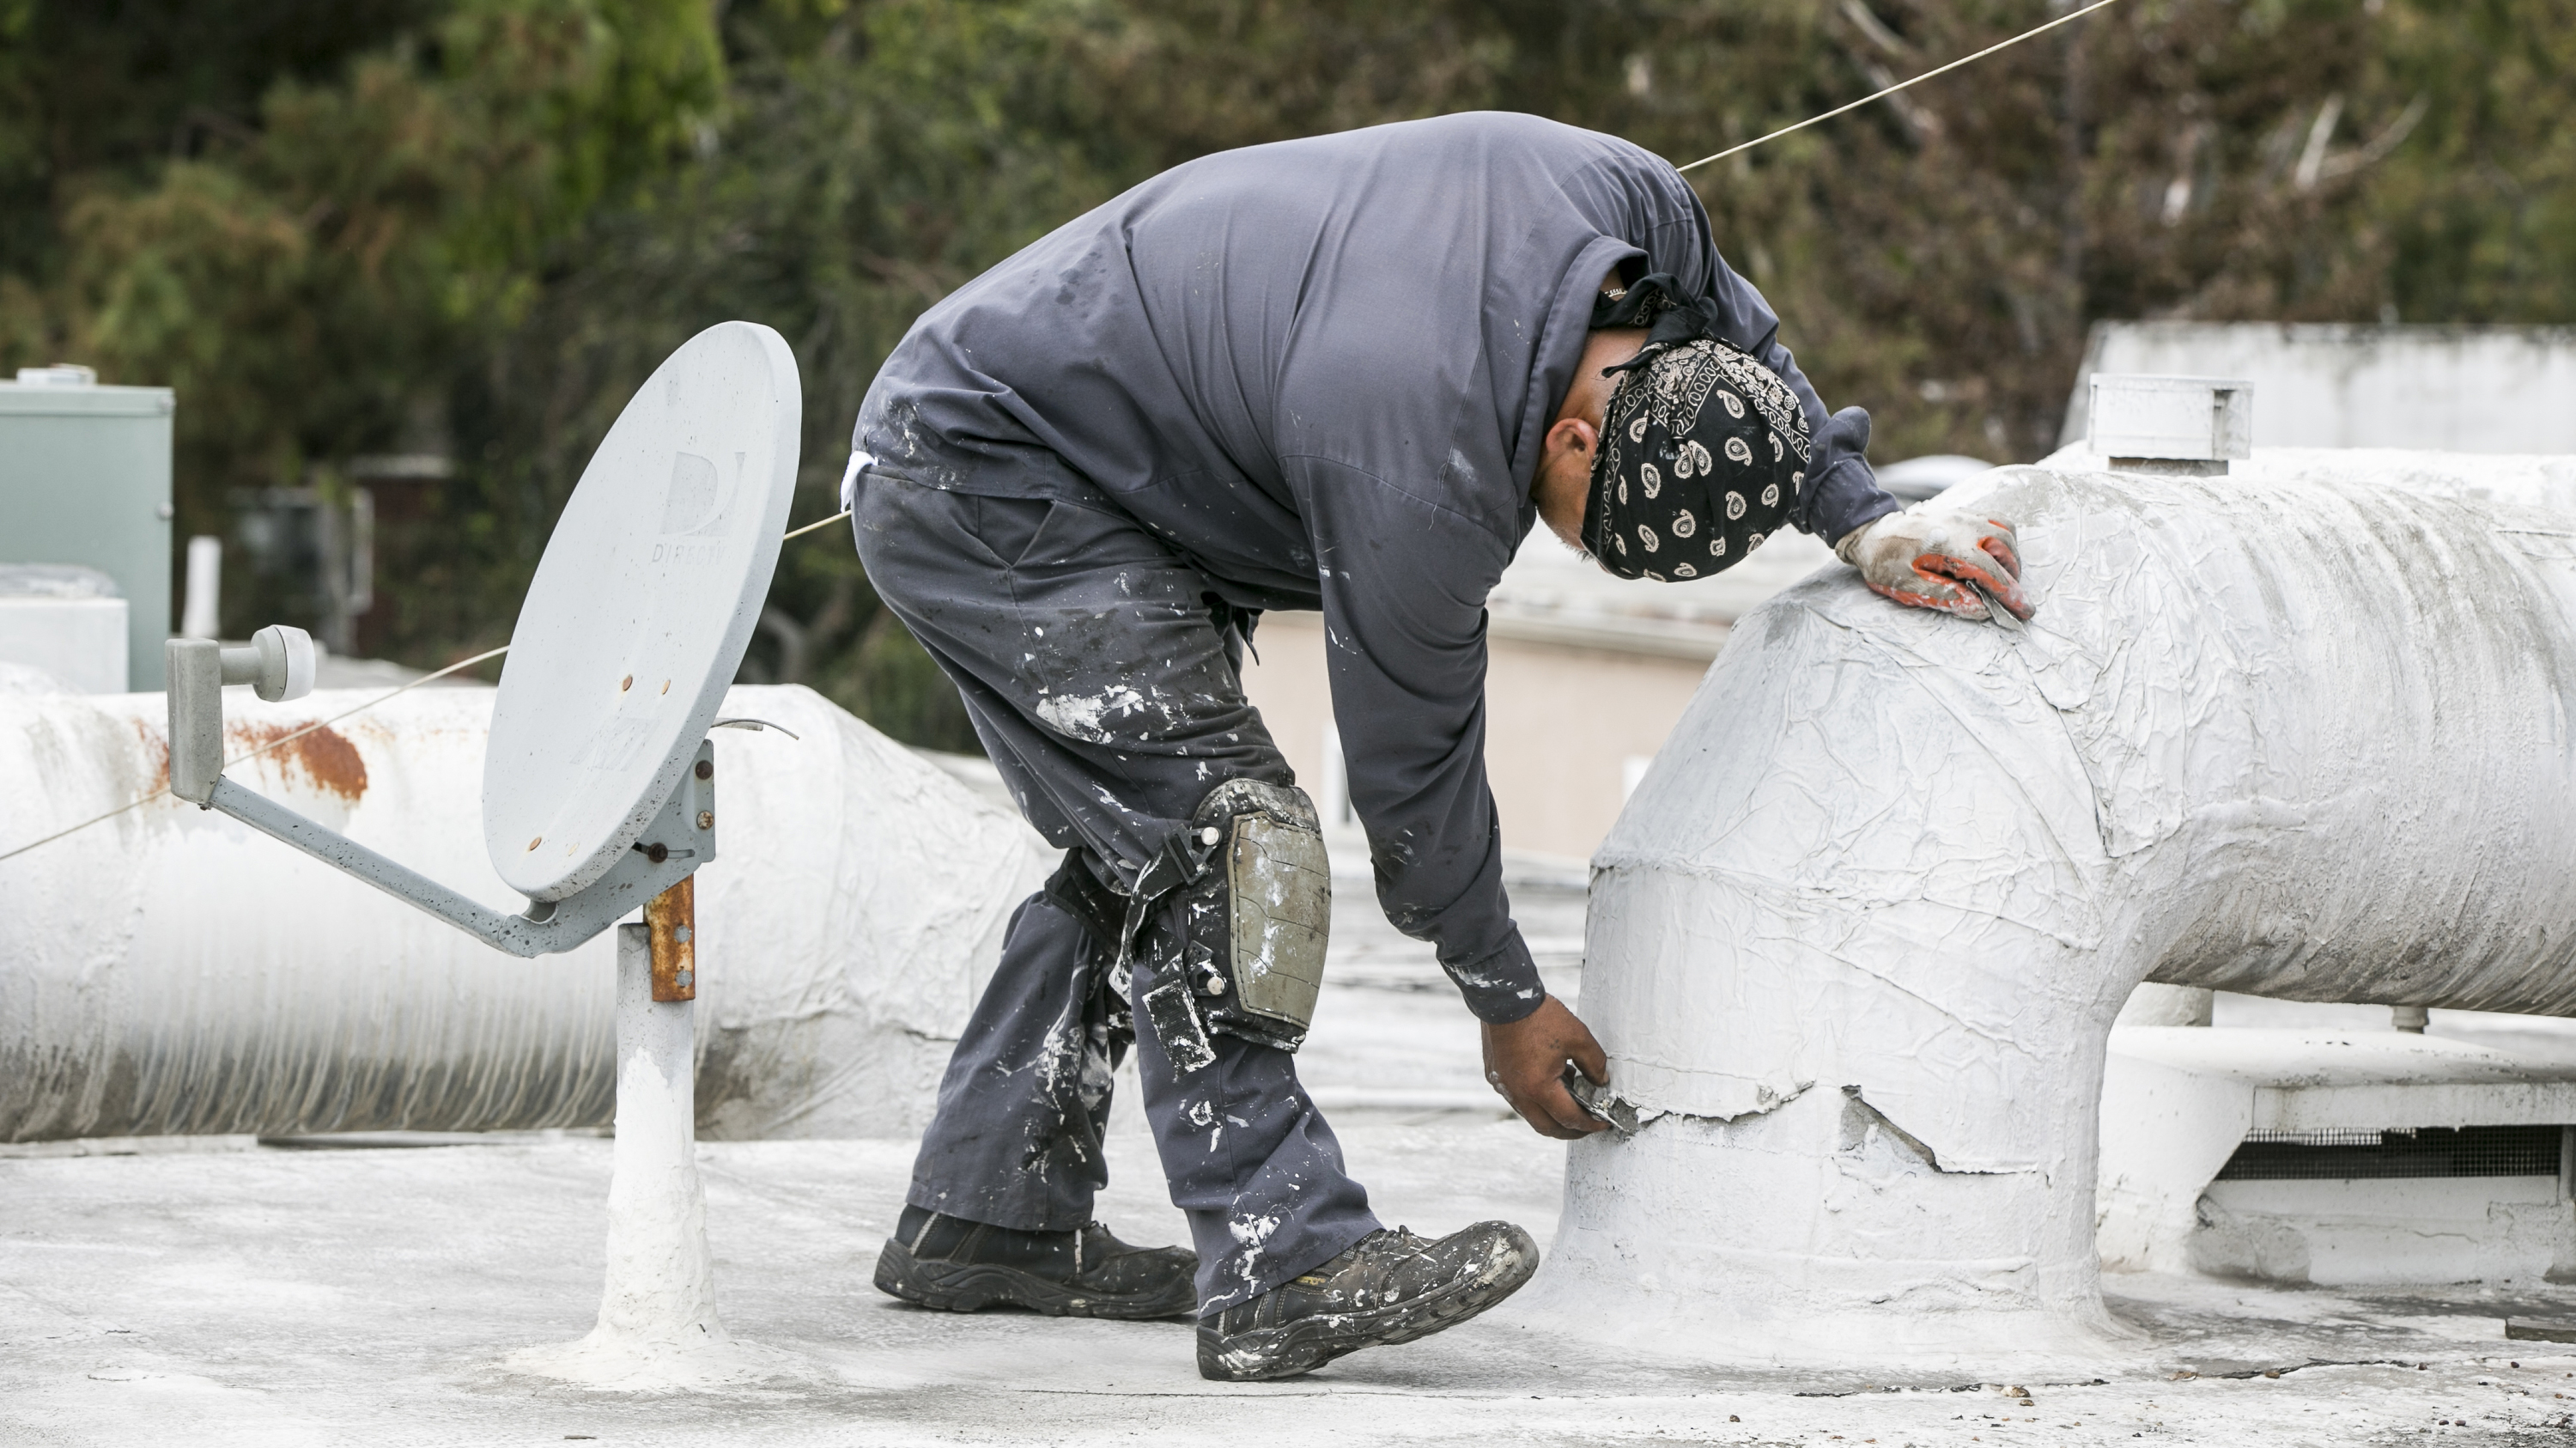 Roofer-inspecting-waterproofing-on-AC-duct-Calif_ElNino-crop-AP_809772792925-DamianDovarganes